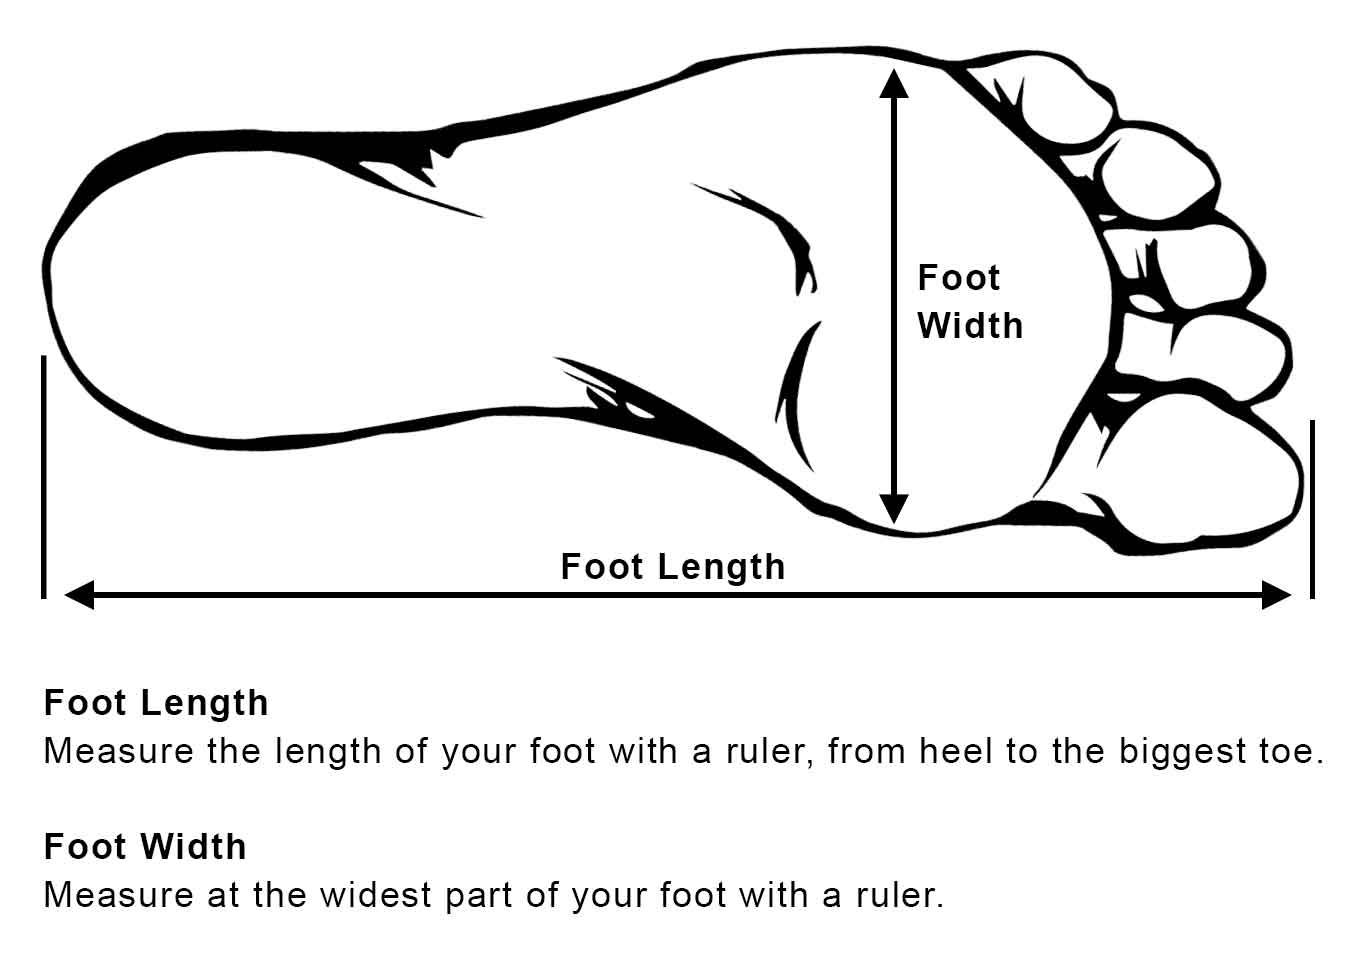 Measure Your Foot Length And Width Brown Leather Boots Black Leather Sandals Shoes Black Leather